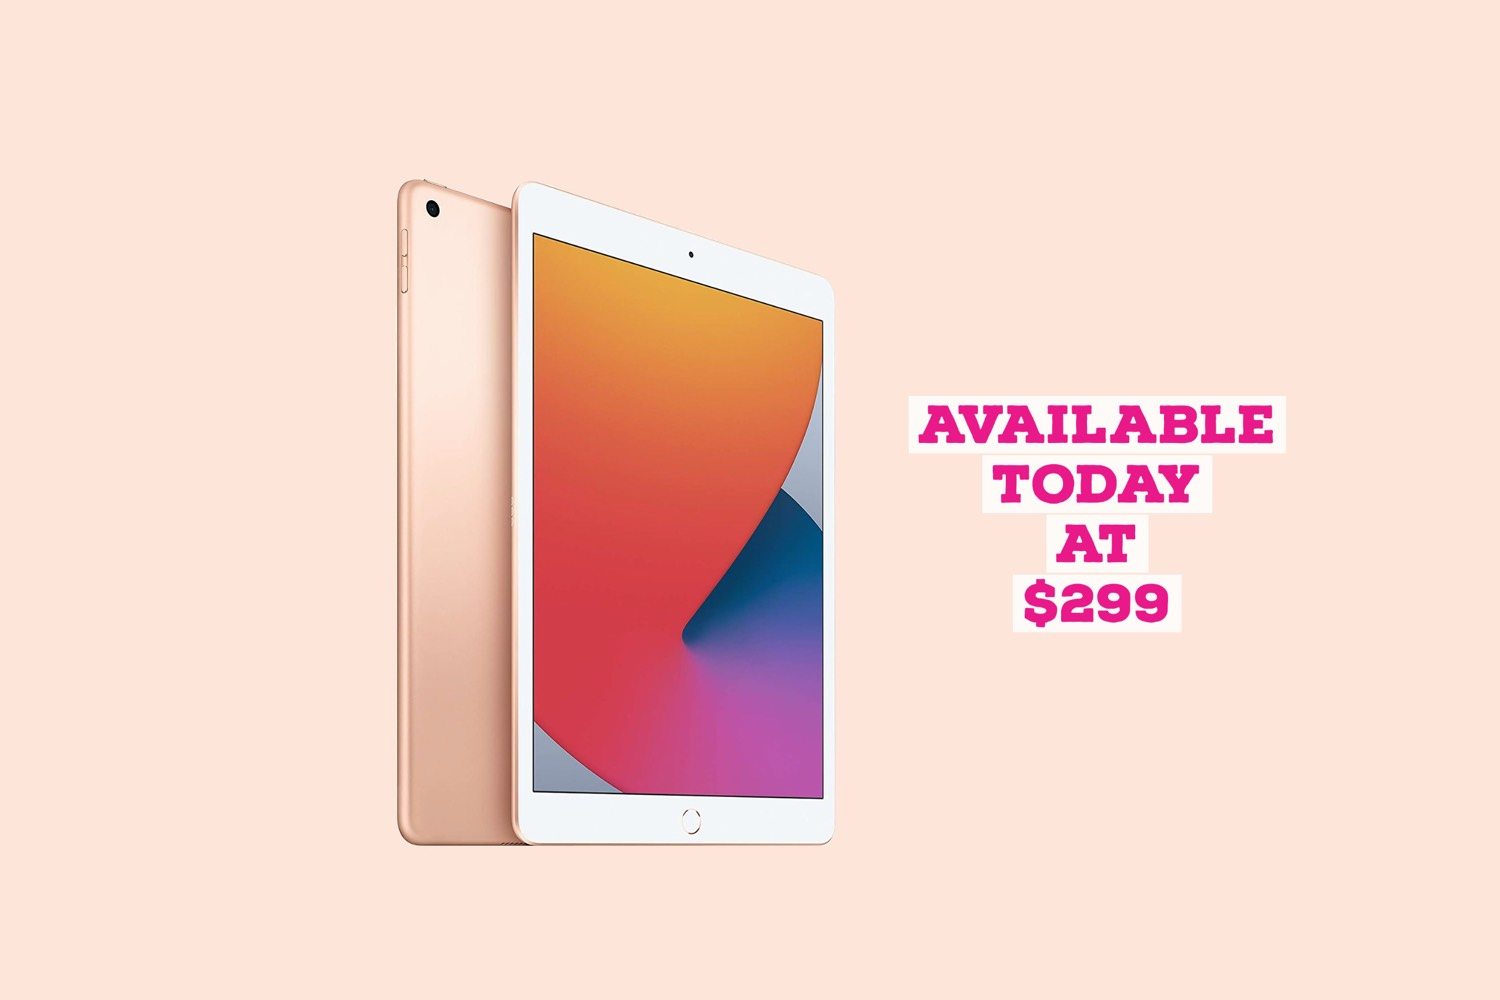 If You Are Still Missing Apple's Latest 8th Gen iPad Then Your Deserve This Today At The Best Price